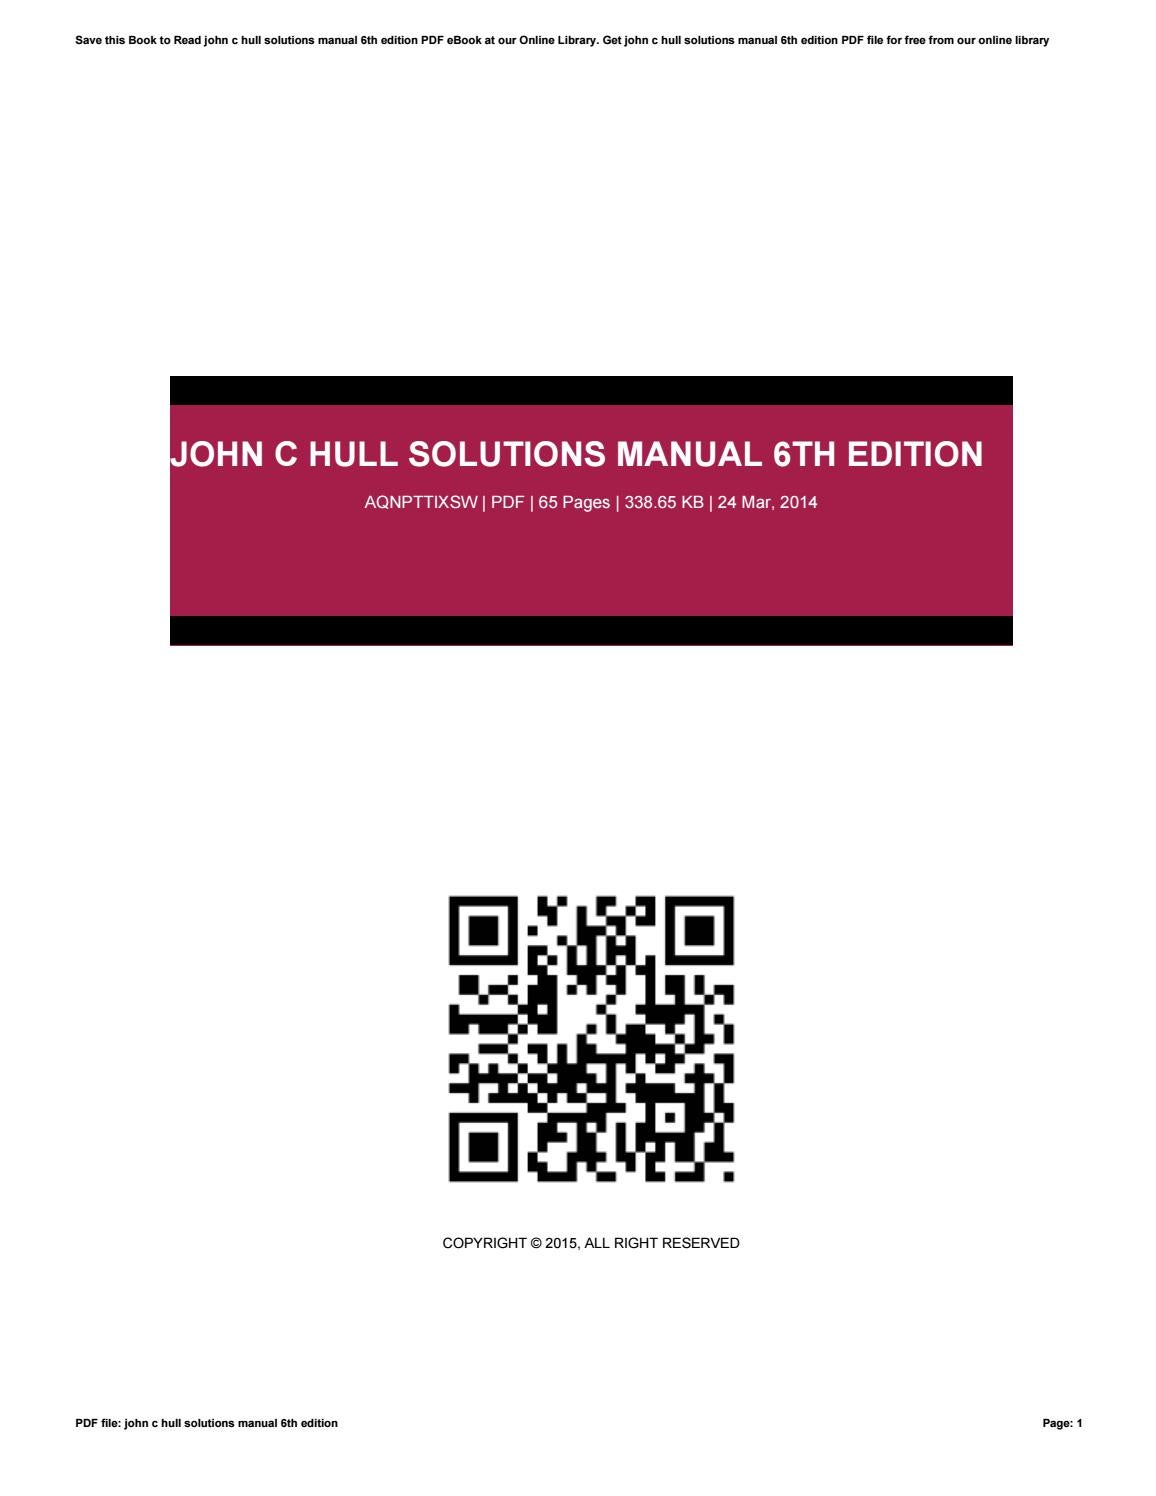 john c hull solutions manual 6th edition by chadchandler4752 issuu rh issuu  com Hull Derivatives Hull Derivatives